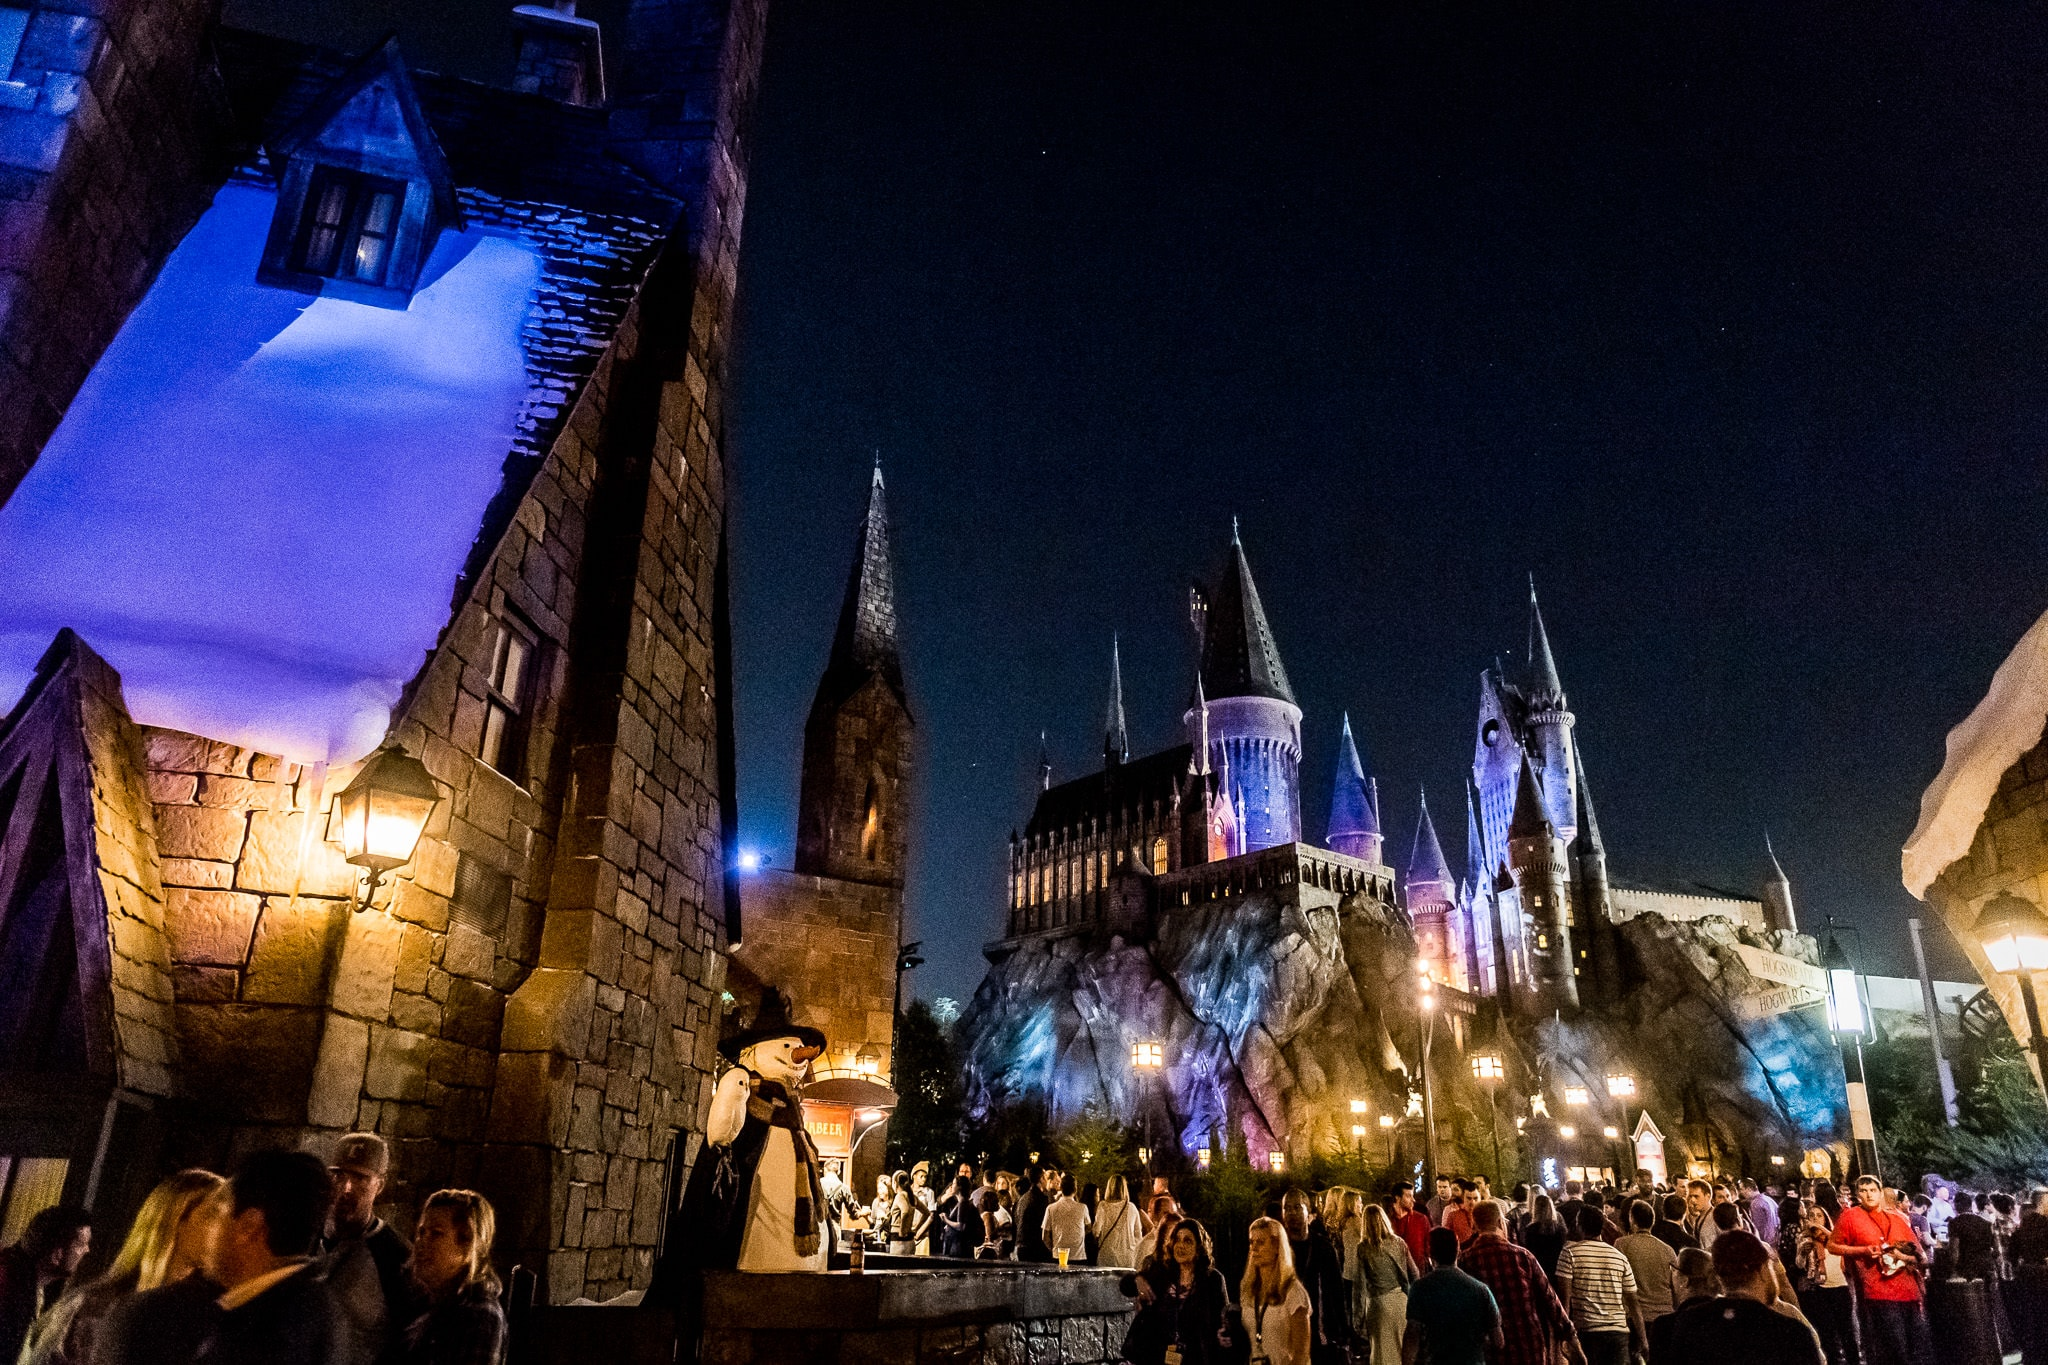 Corporate employees enjoying their company party at The Wizarding World of Harry Potter